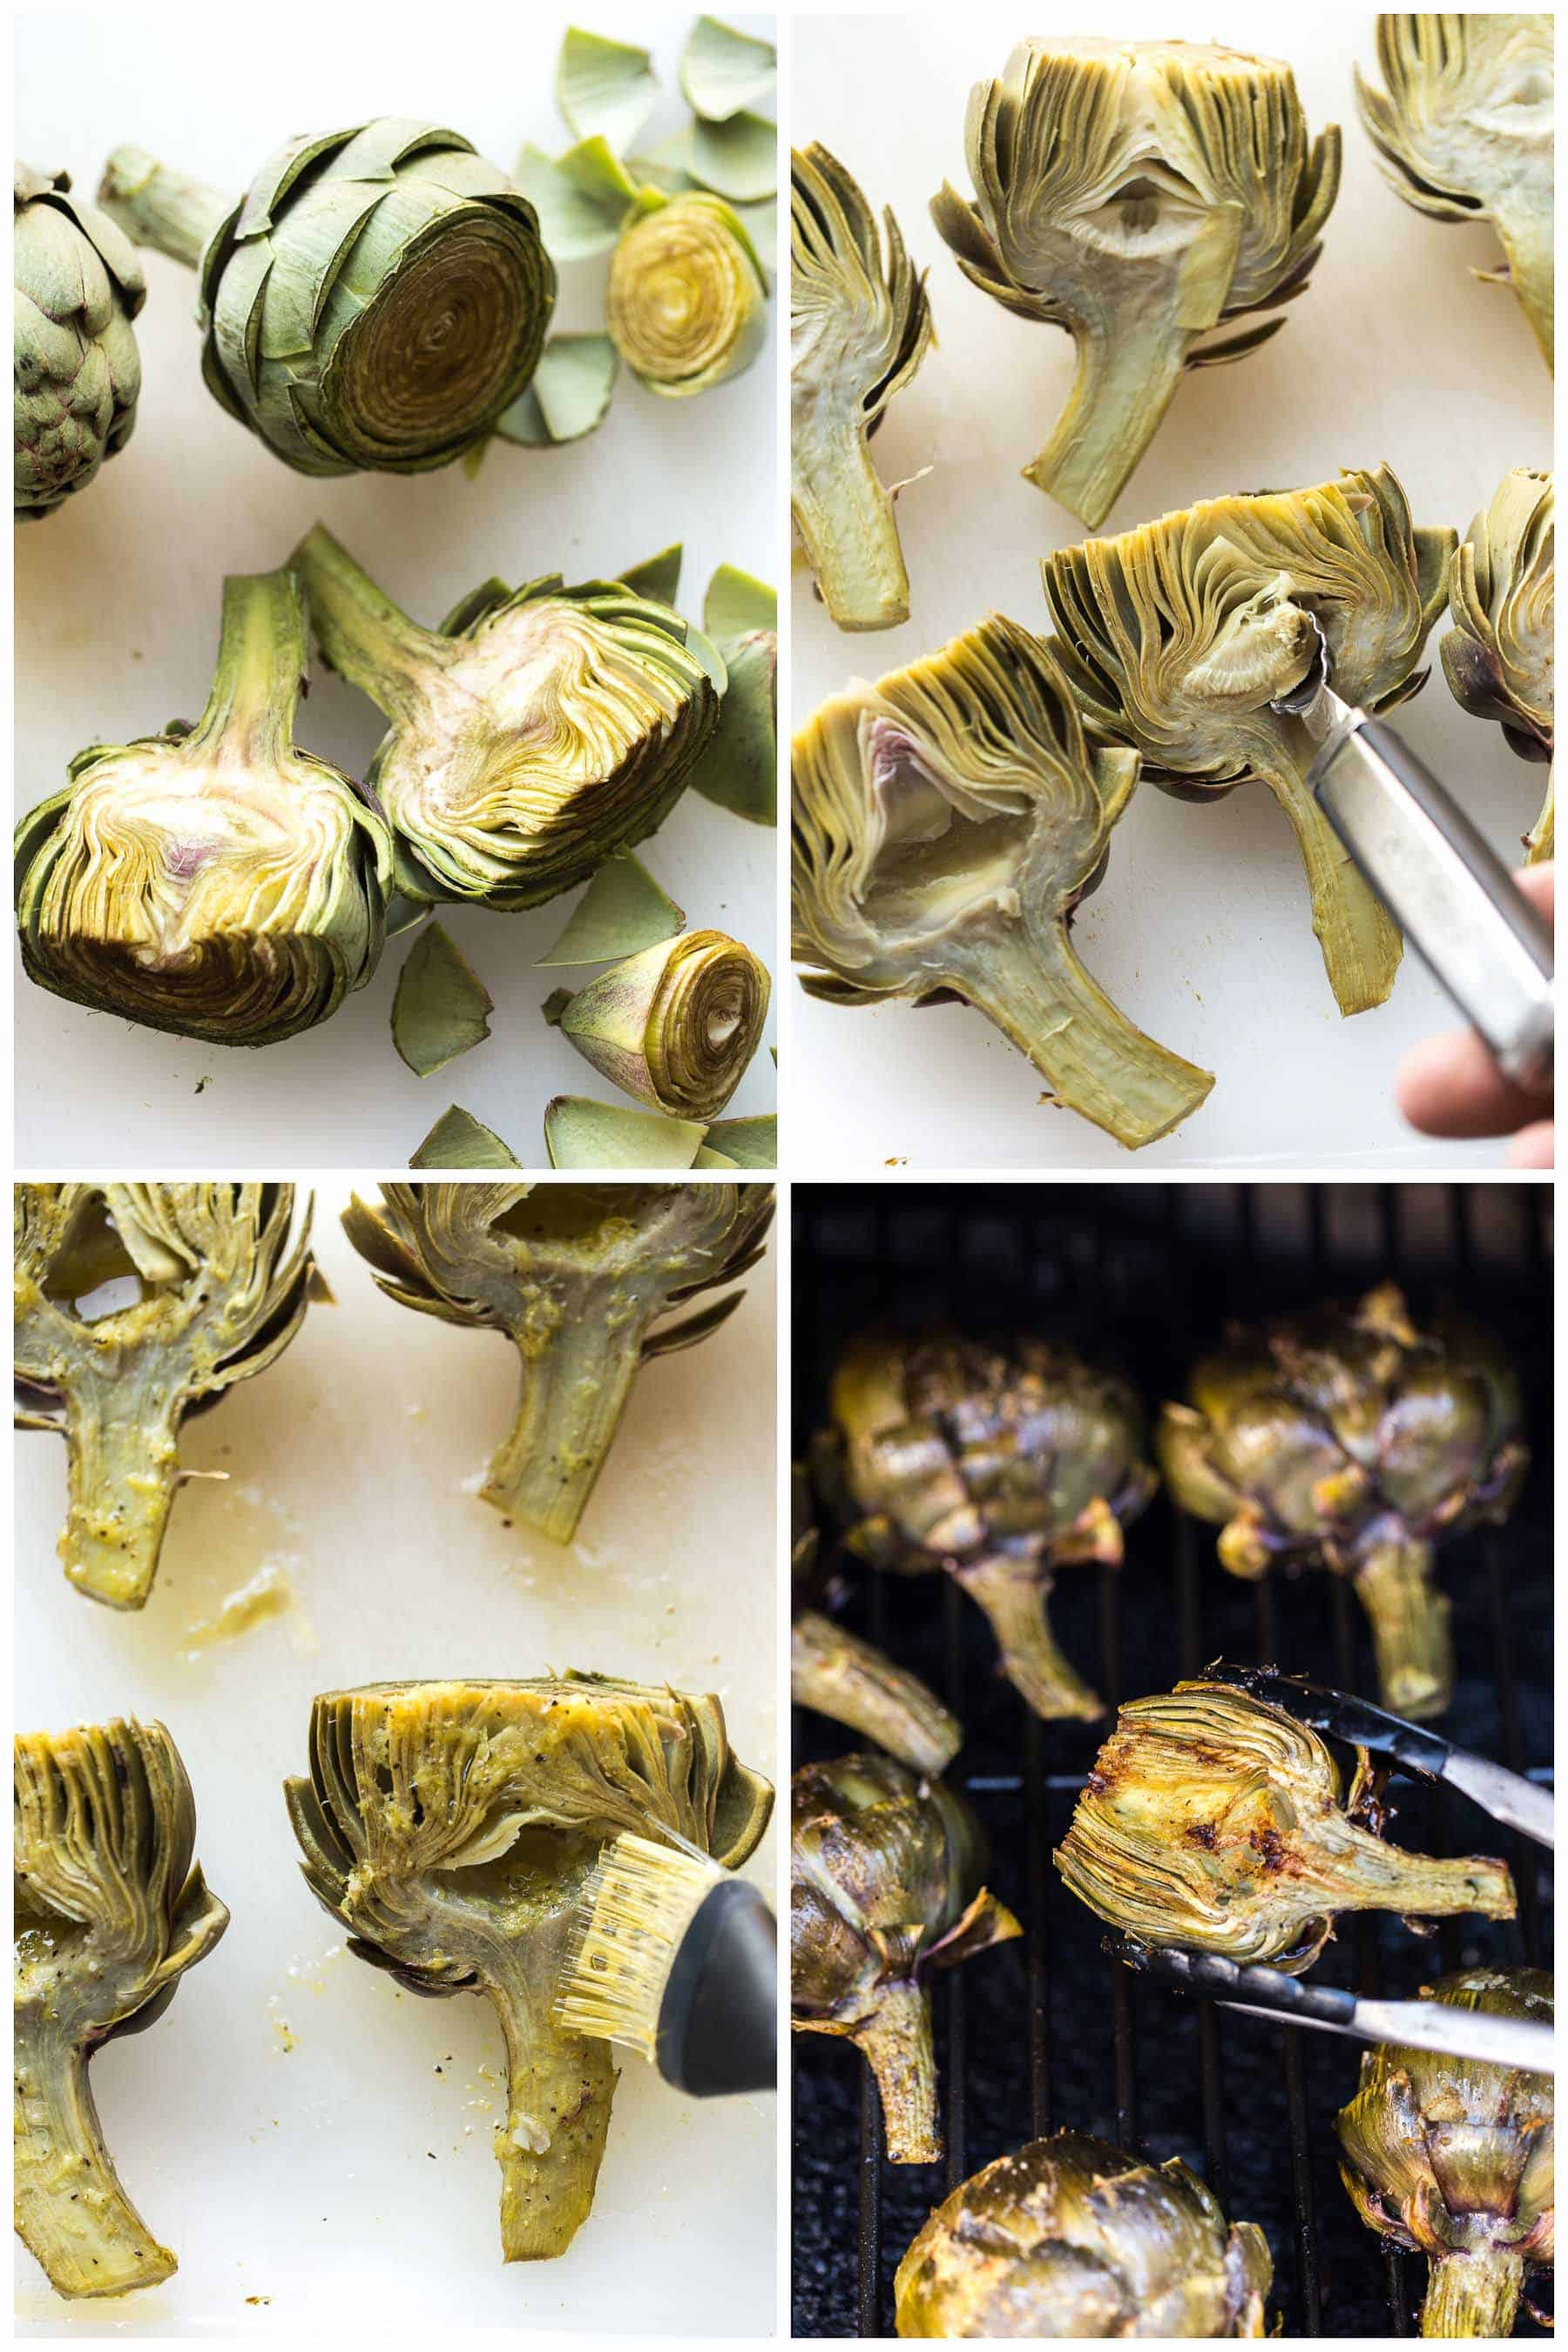 Paleo & Whole30 Grilled Artichokes with a lemon garlic basting oil and a lemon garlic aioli dipping sauce. A delicious appetizer or side dish recipe! Paleo, Whole30, gluten free, grain free, dairy free, sugar free, vegetarian, clean eating.